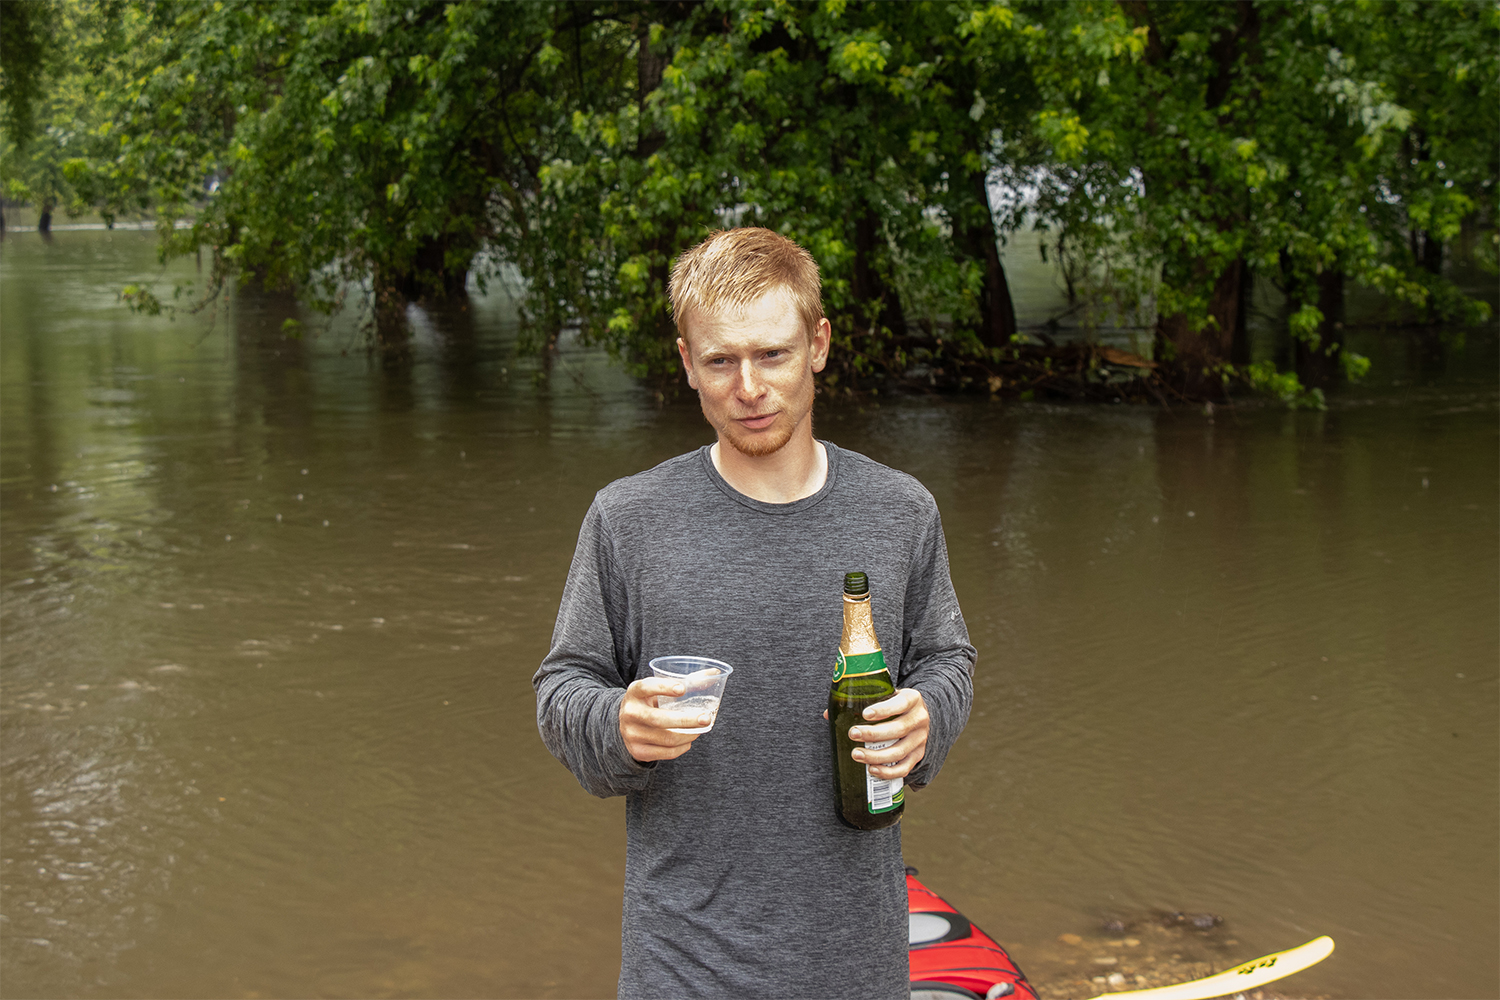 Daily+Iowan+Photojournalist+Ryan+Adams+enjoys+a+glass+of+sparkling+grape+juice+in+celebration+of+the+end+of+his+329-mile+expedition+of+the+Iowa+River.+Adams+spent+27+days+on-and-off+the+river+dedicated+to+researching+nutrient+levels%2C+interviewing+people%2C+and+documenting+his+journey.+